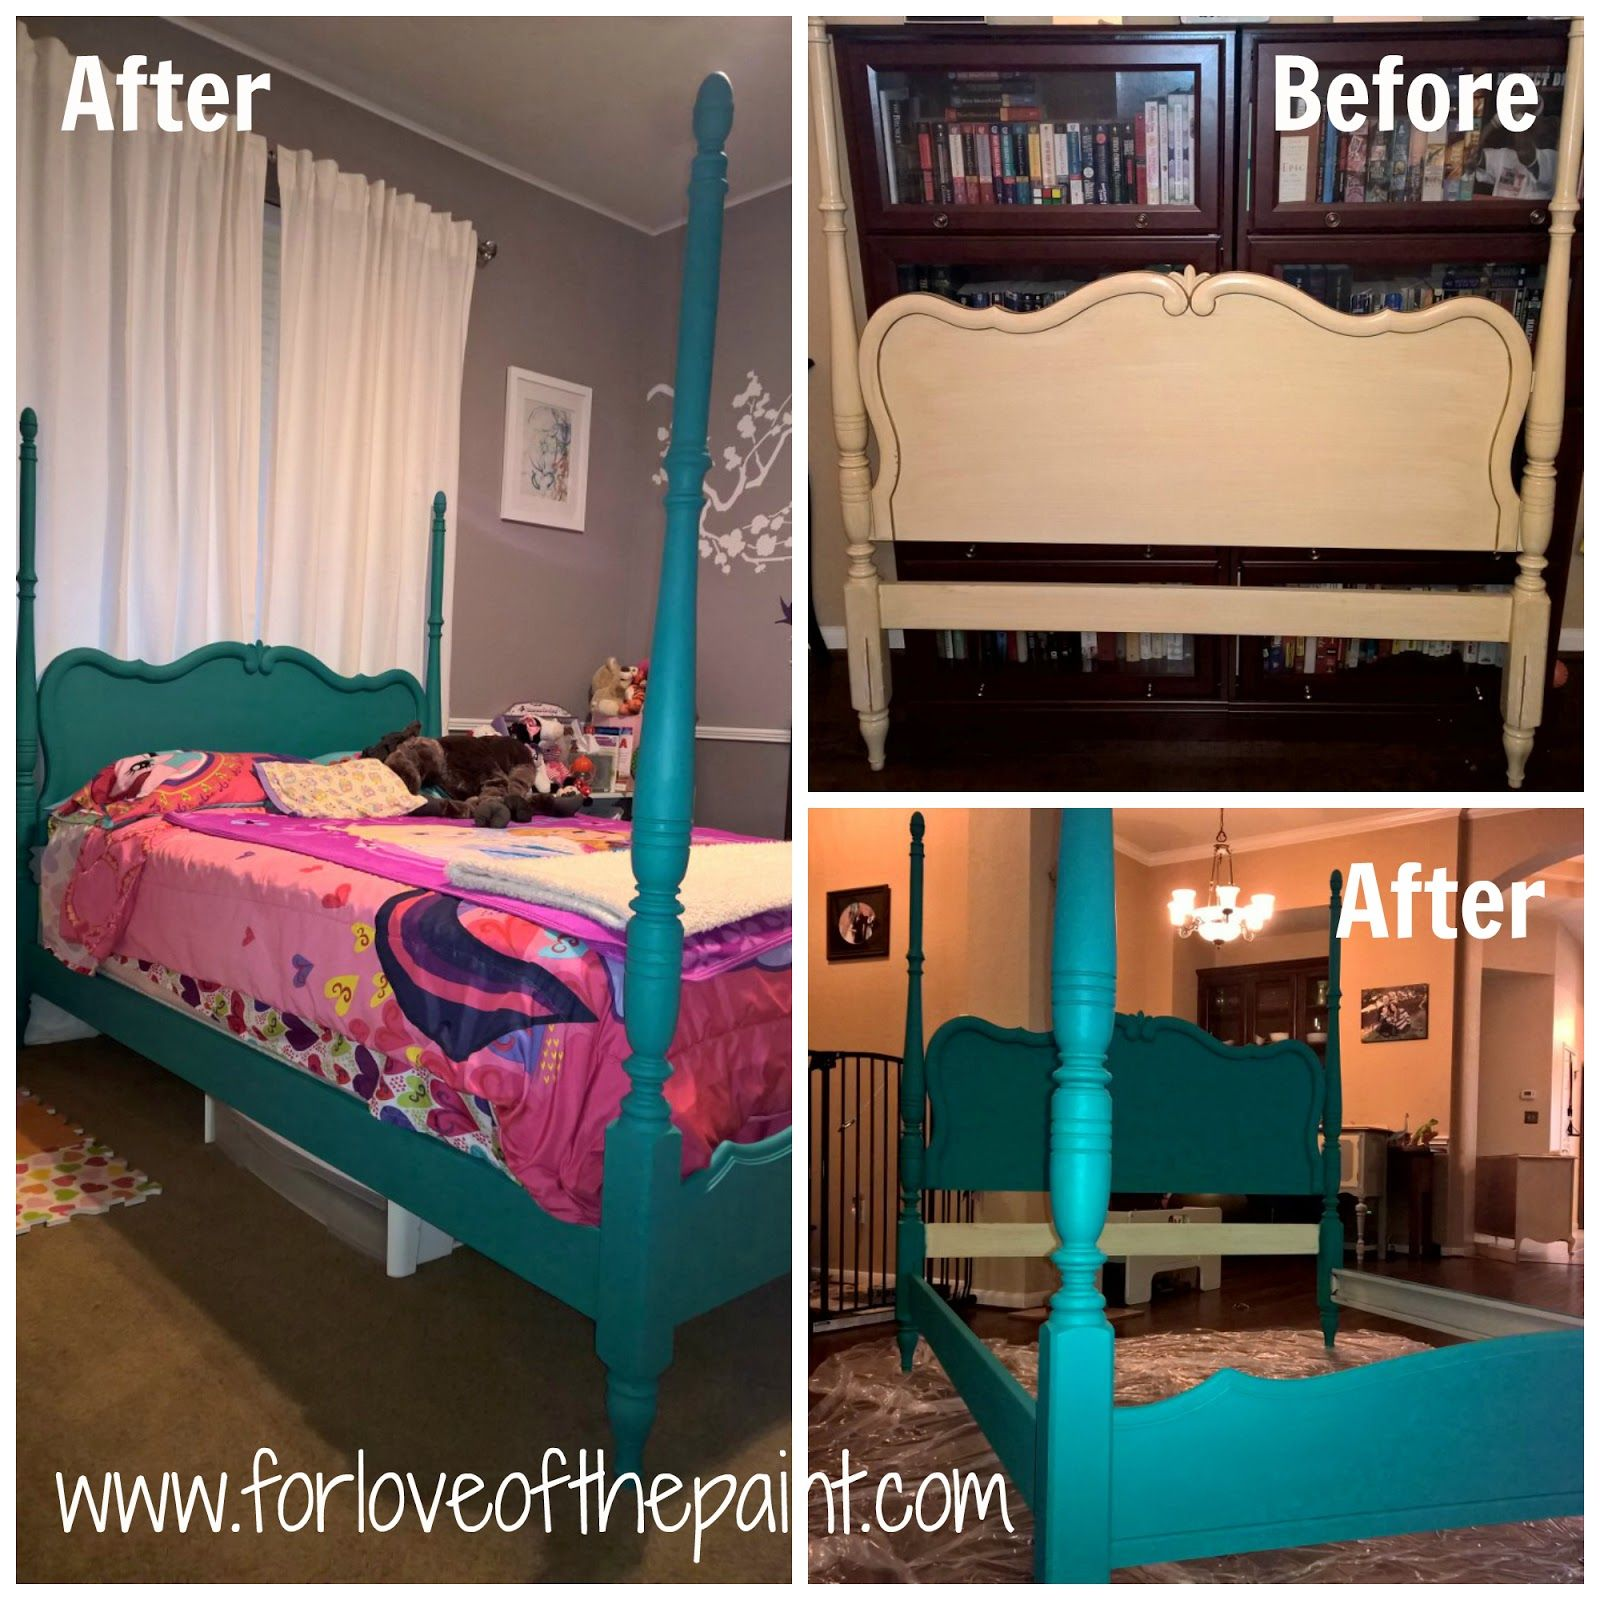 Before And After Vintage Four Poster Bed In Annie Sloan Chalk Paint Florence Morethanpaint Chalkpaint Diy Upcycle